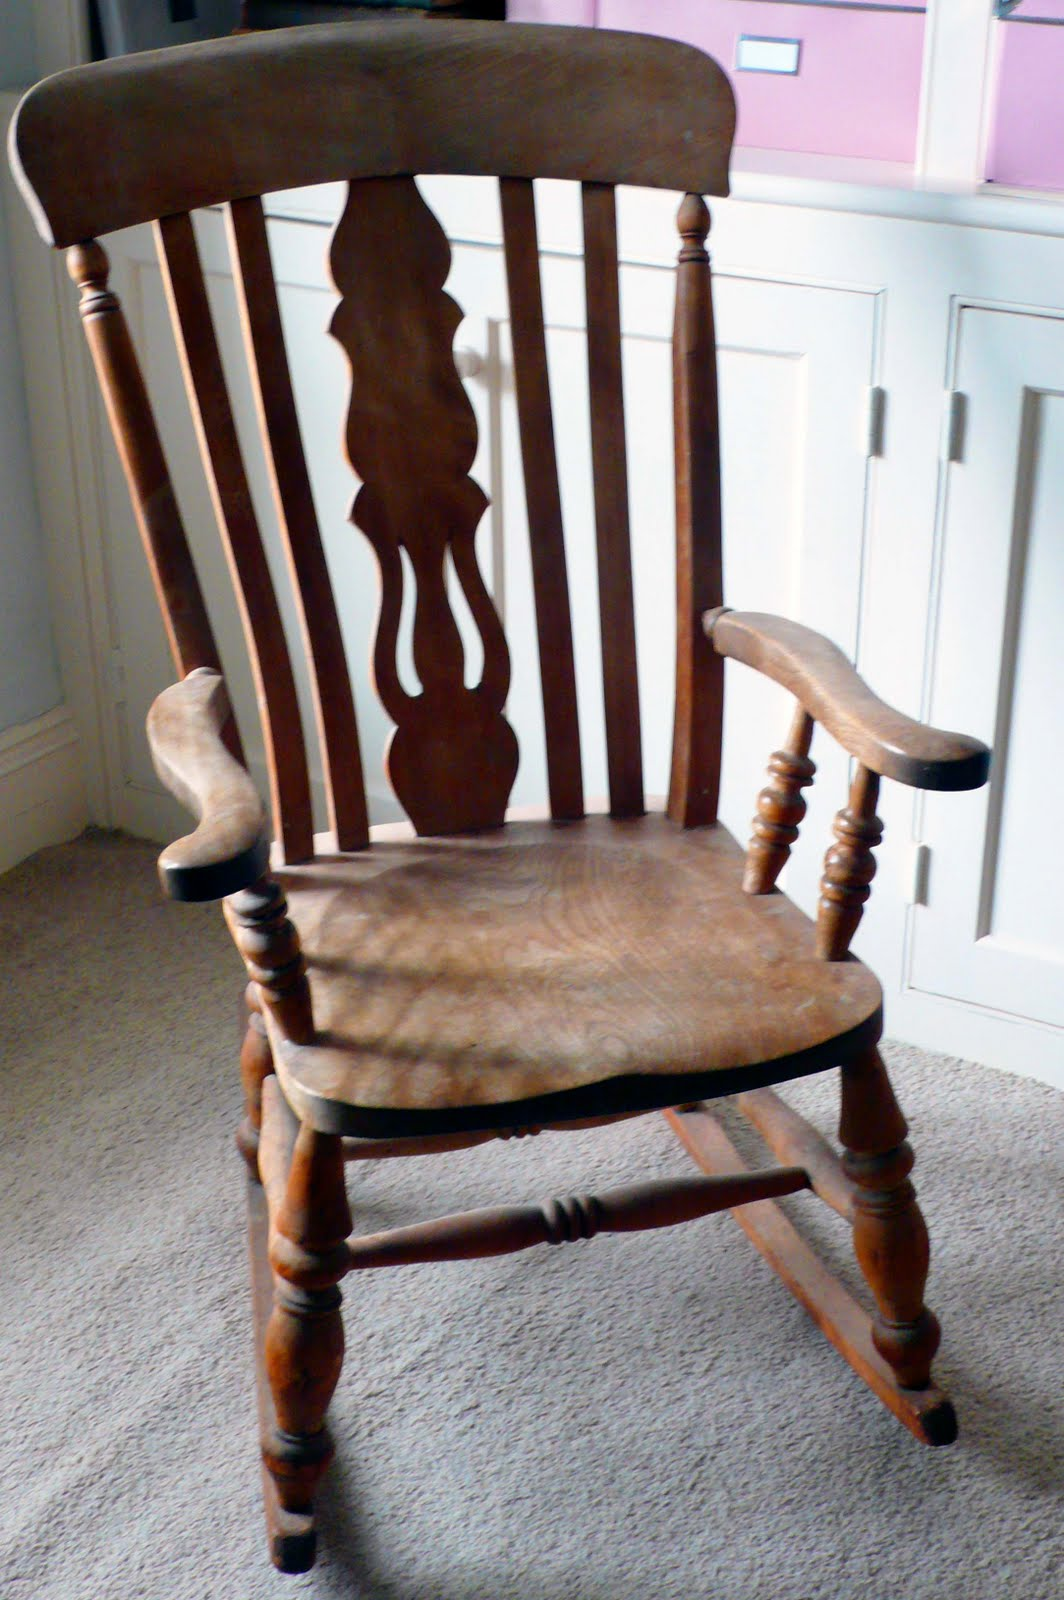 aunt priscilla has a rocking chair big joe kids my life in one hundred objects